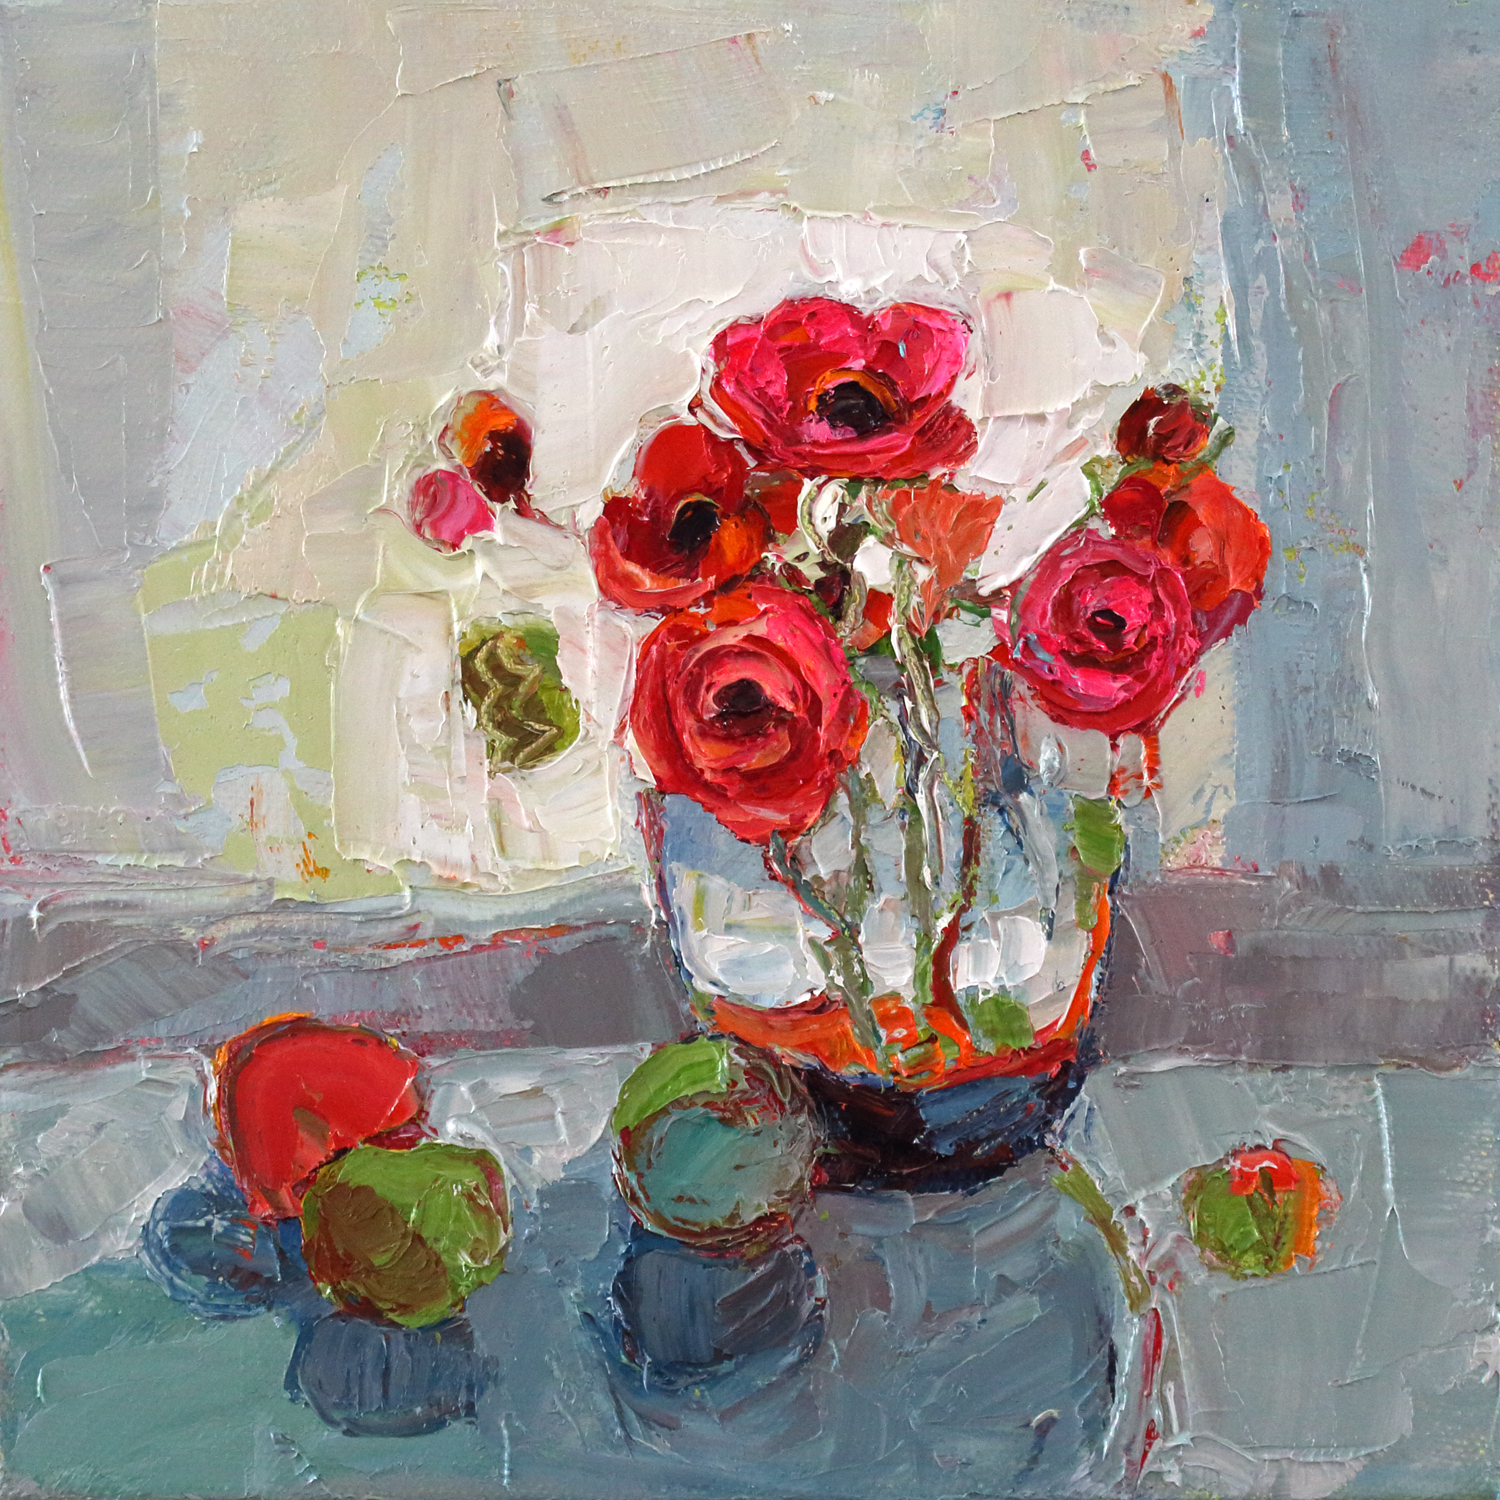 Artist: Kirsty Wither  Title: Rosy Tumbler  Size: 20 x 20 cm  Medium: Oil on canvas  Price: SOLD